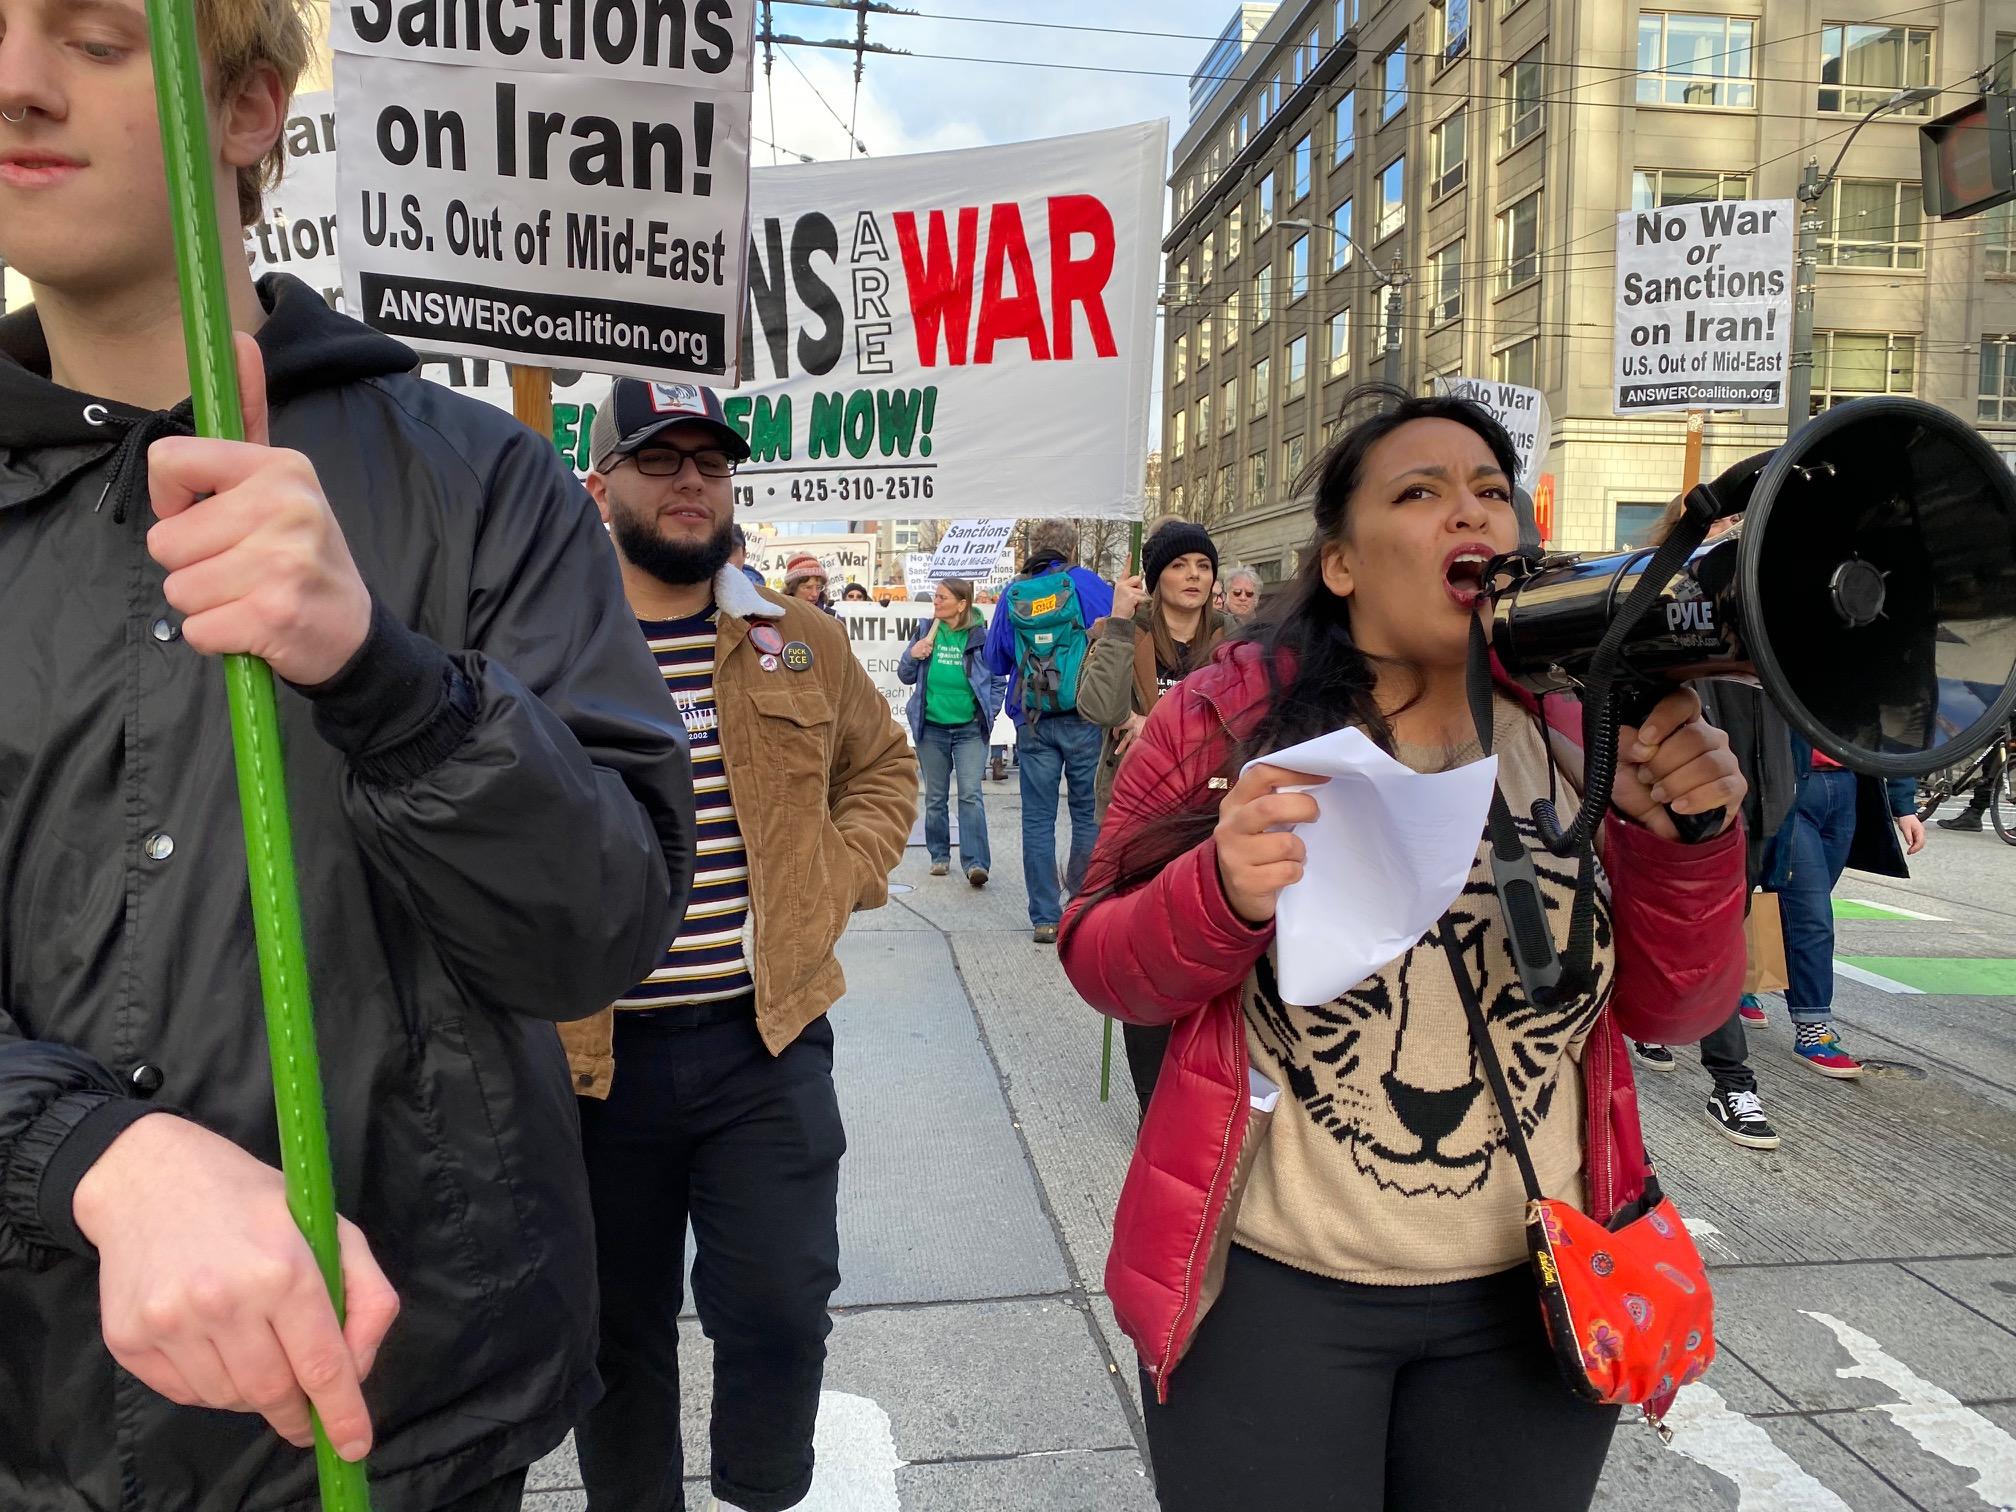 Northwest protests demand No War on Iran!